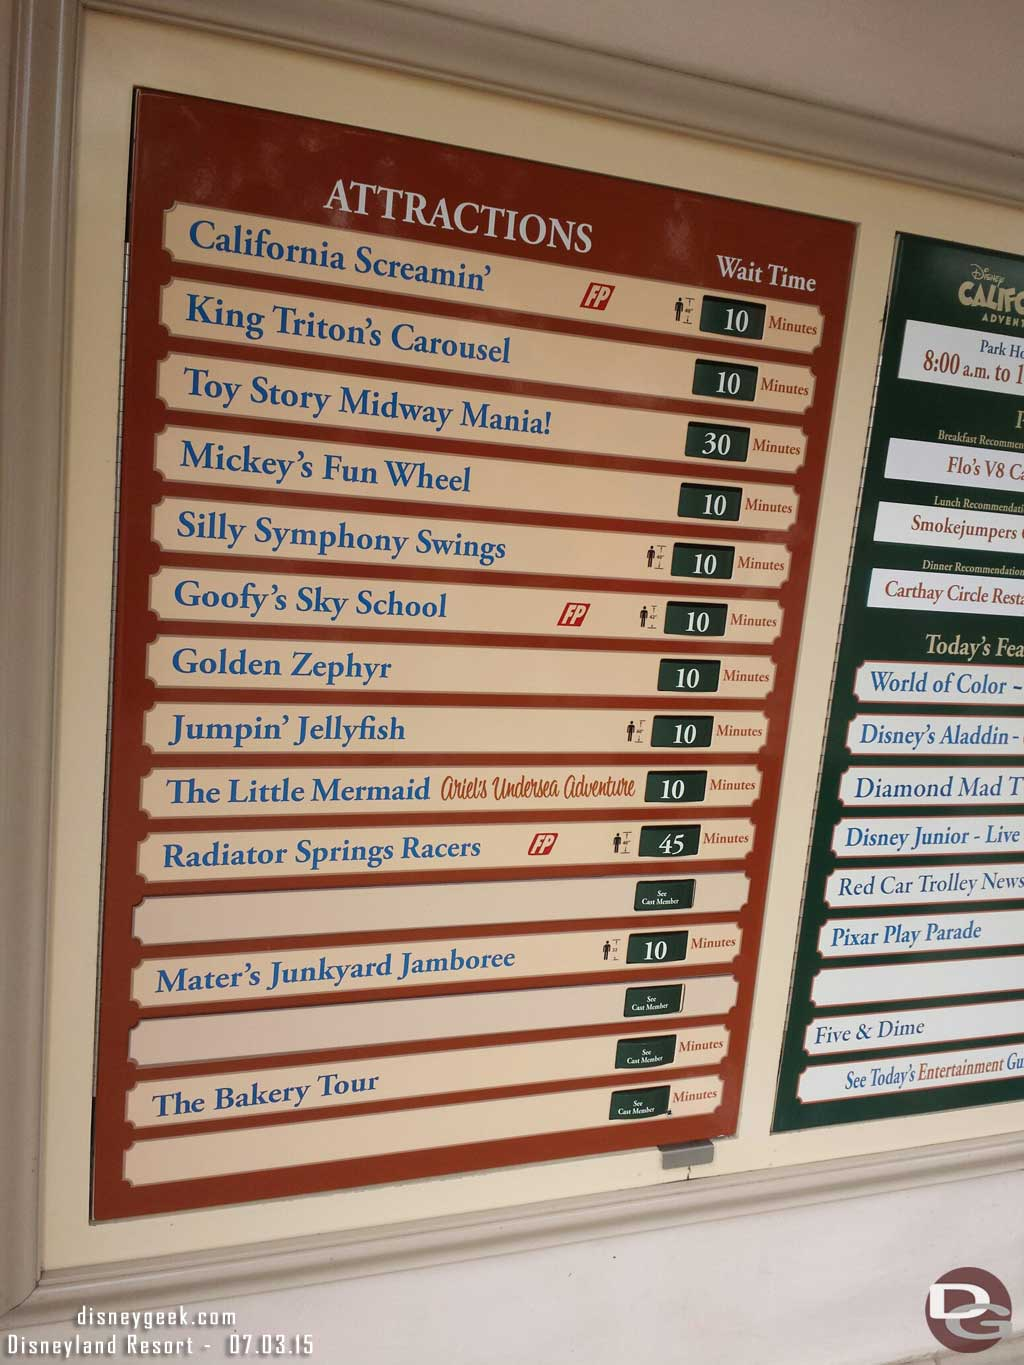 A check of Disney California Adventure waits as of 9:35am